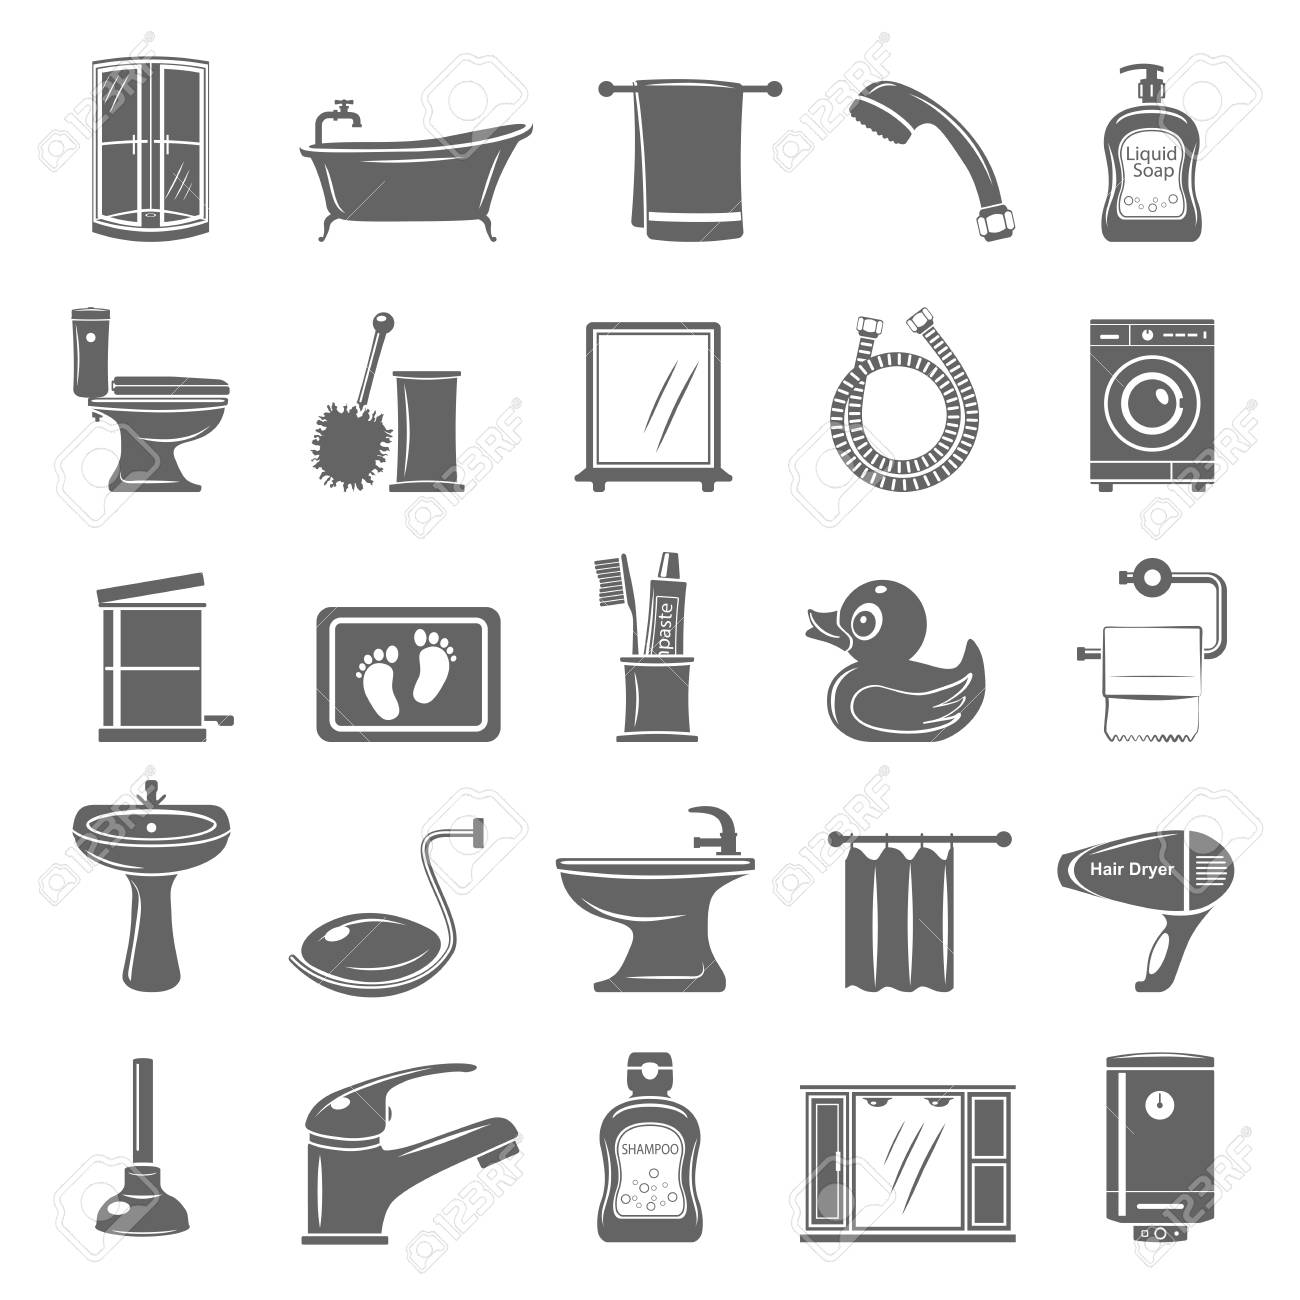 Bathroom Equipment And Accessories Vector Illustration Set Royalty ...